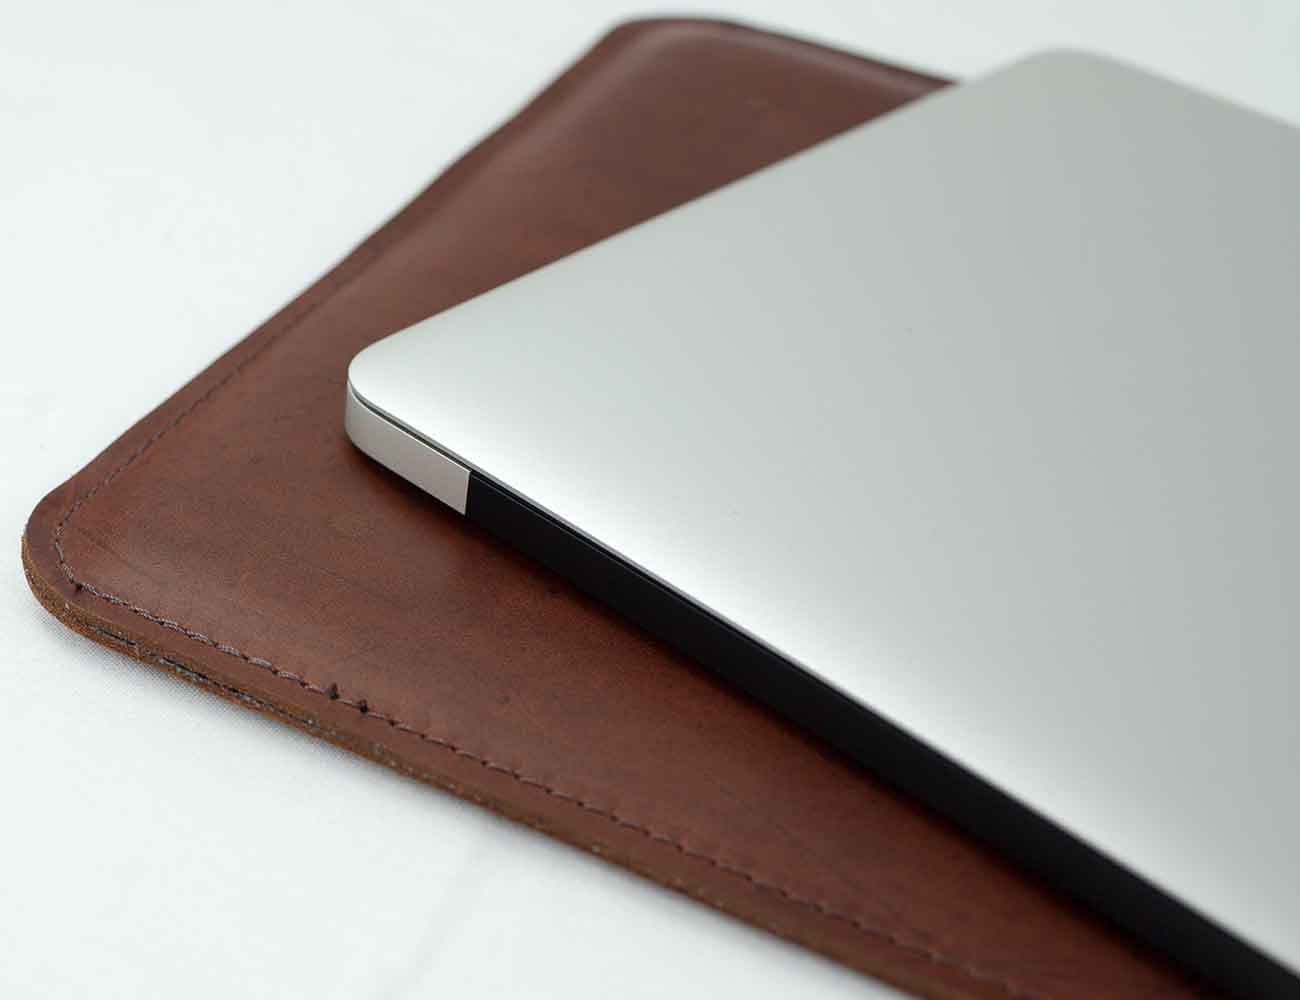 Leather MacBook Air Sleeve by MintCases